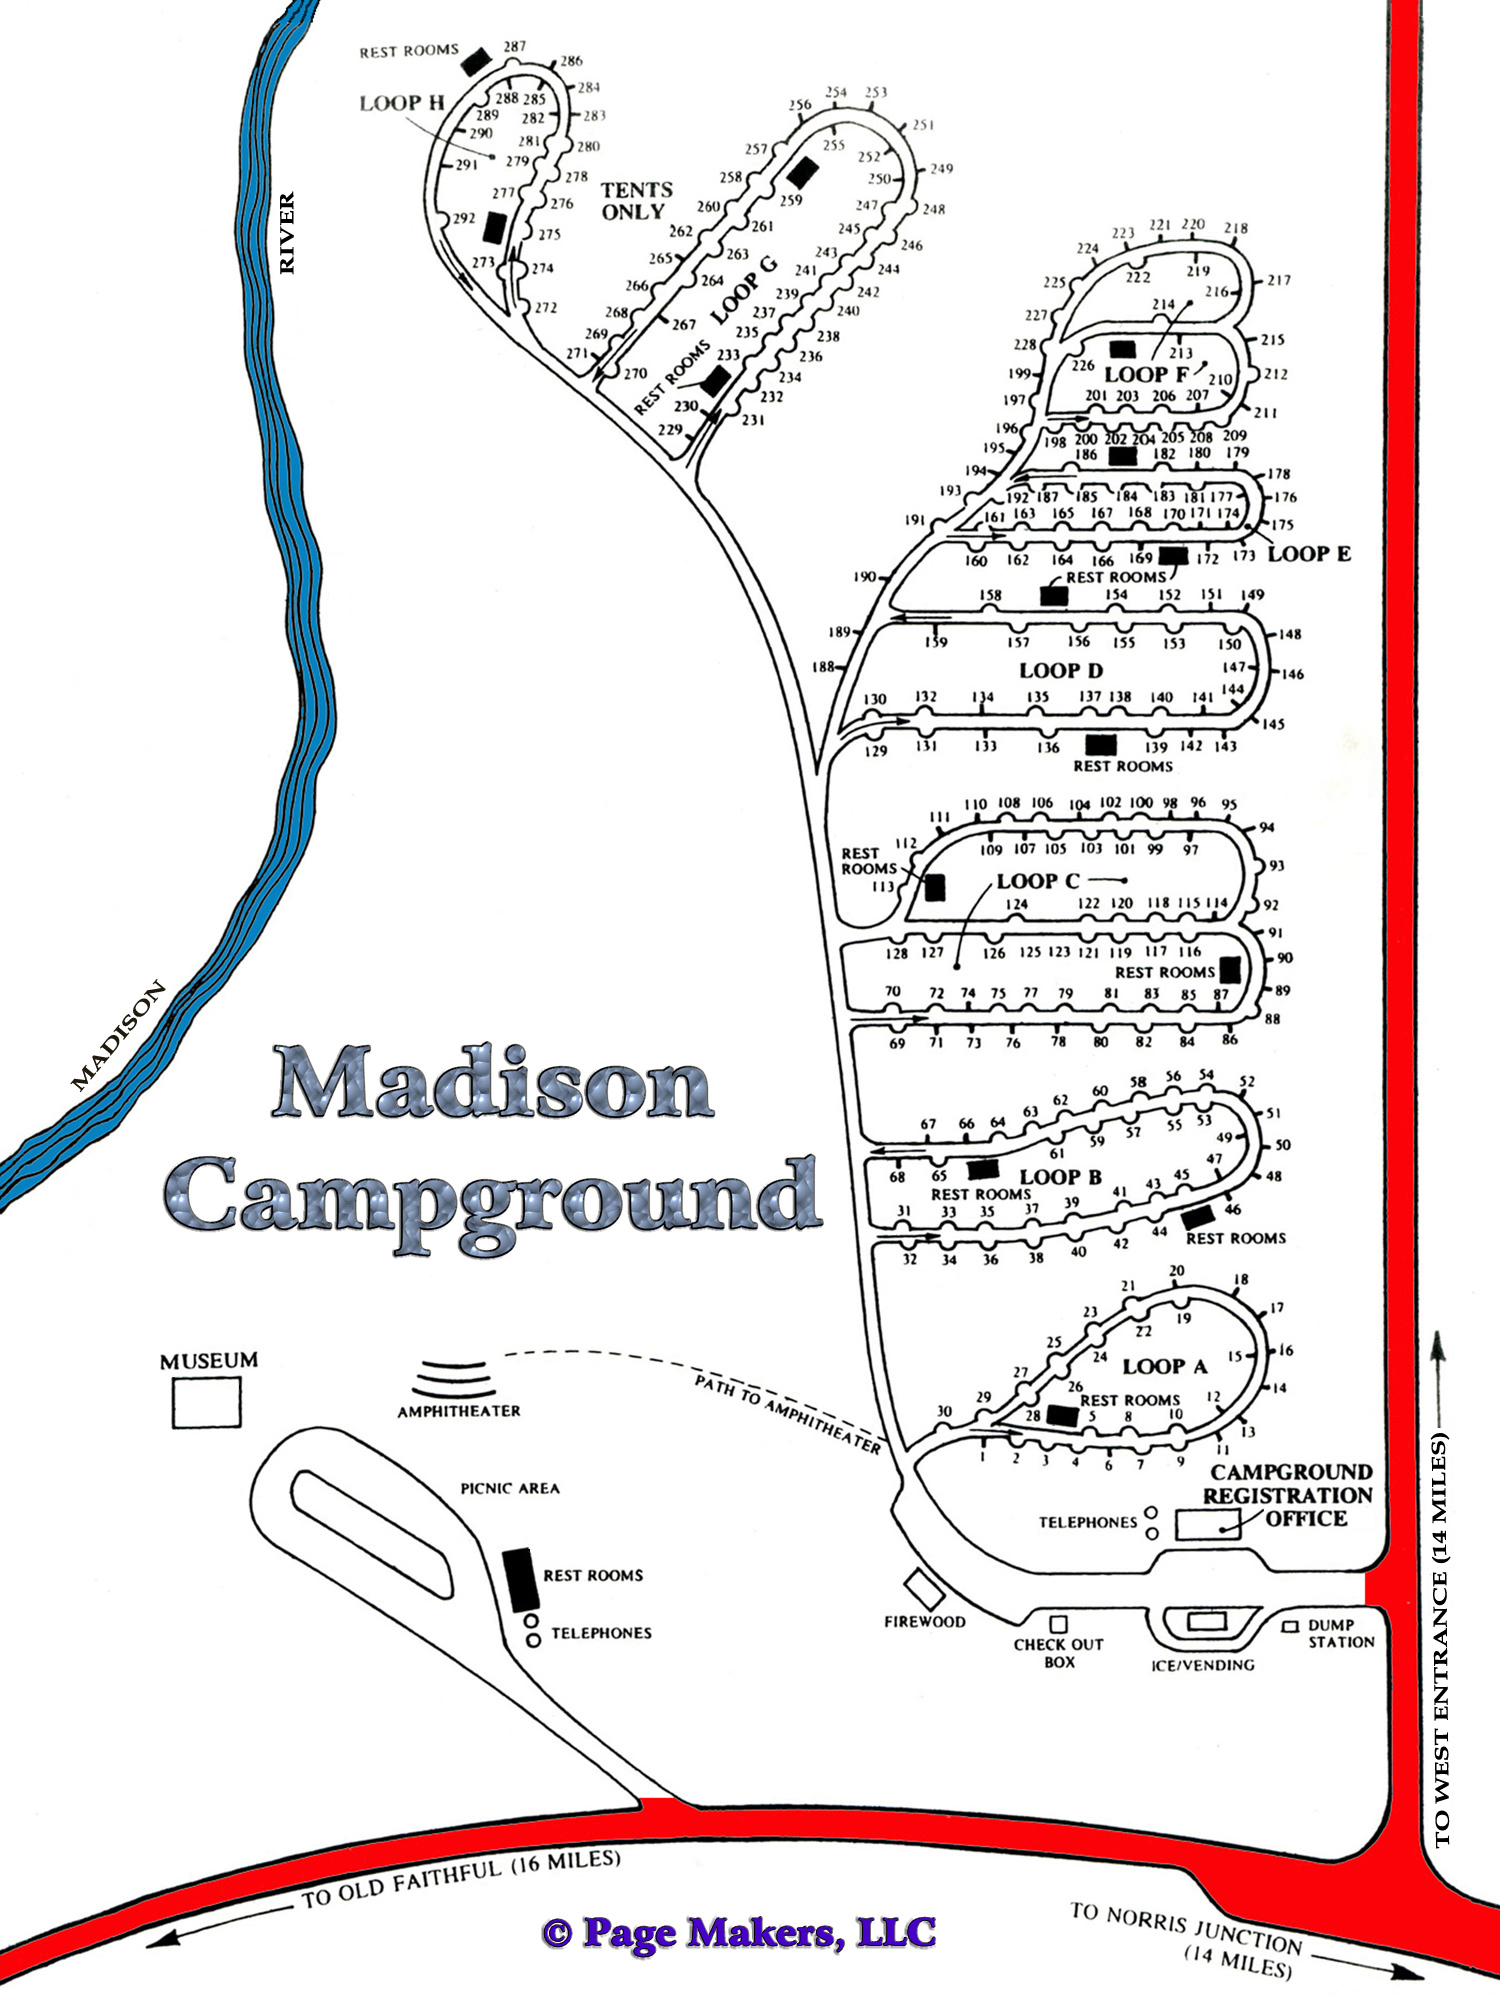 Madison Campground Map, Pictures and Video Yellowstone National Park ...